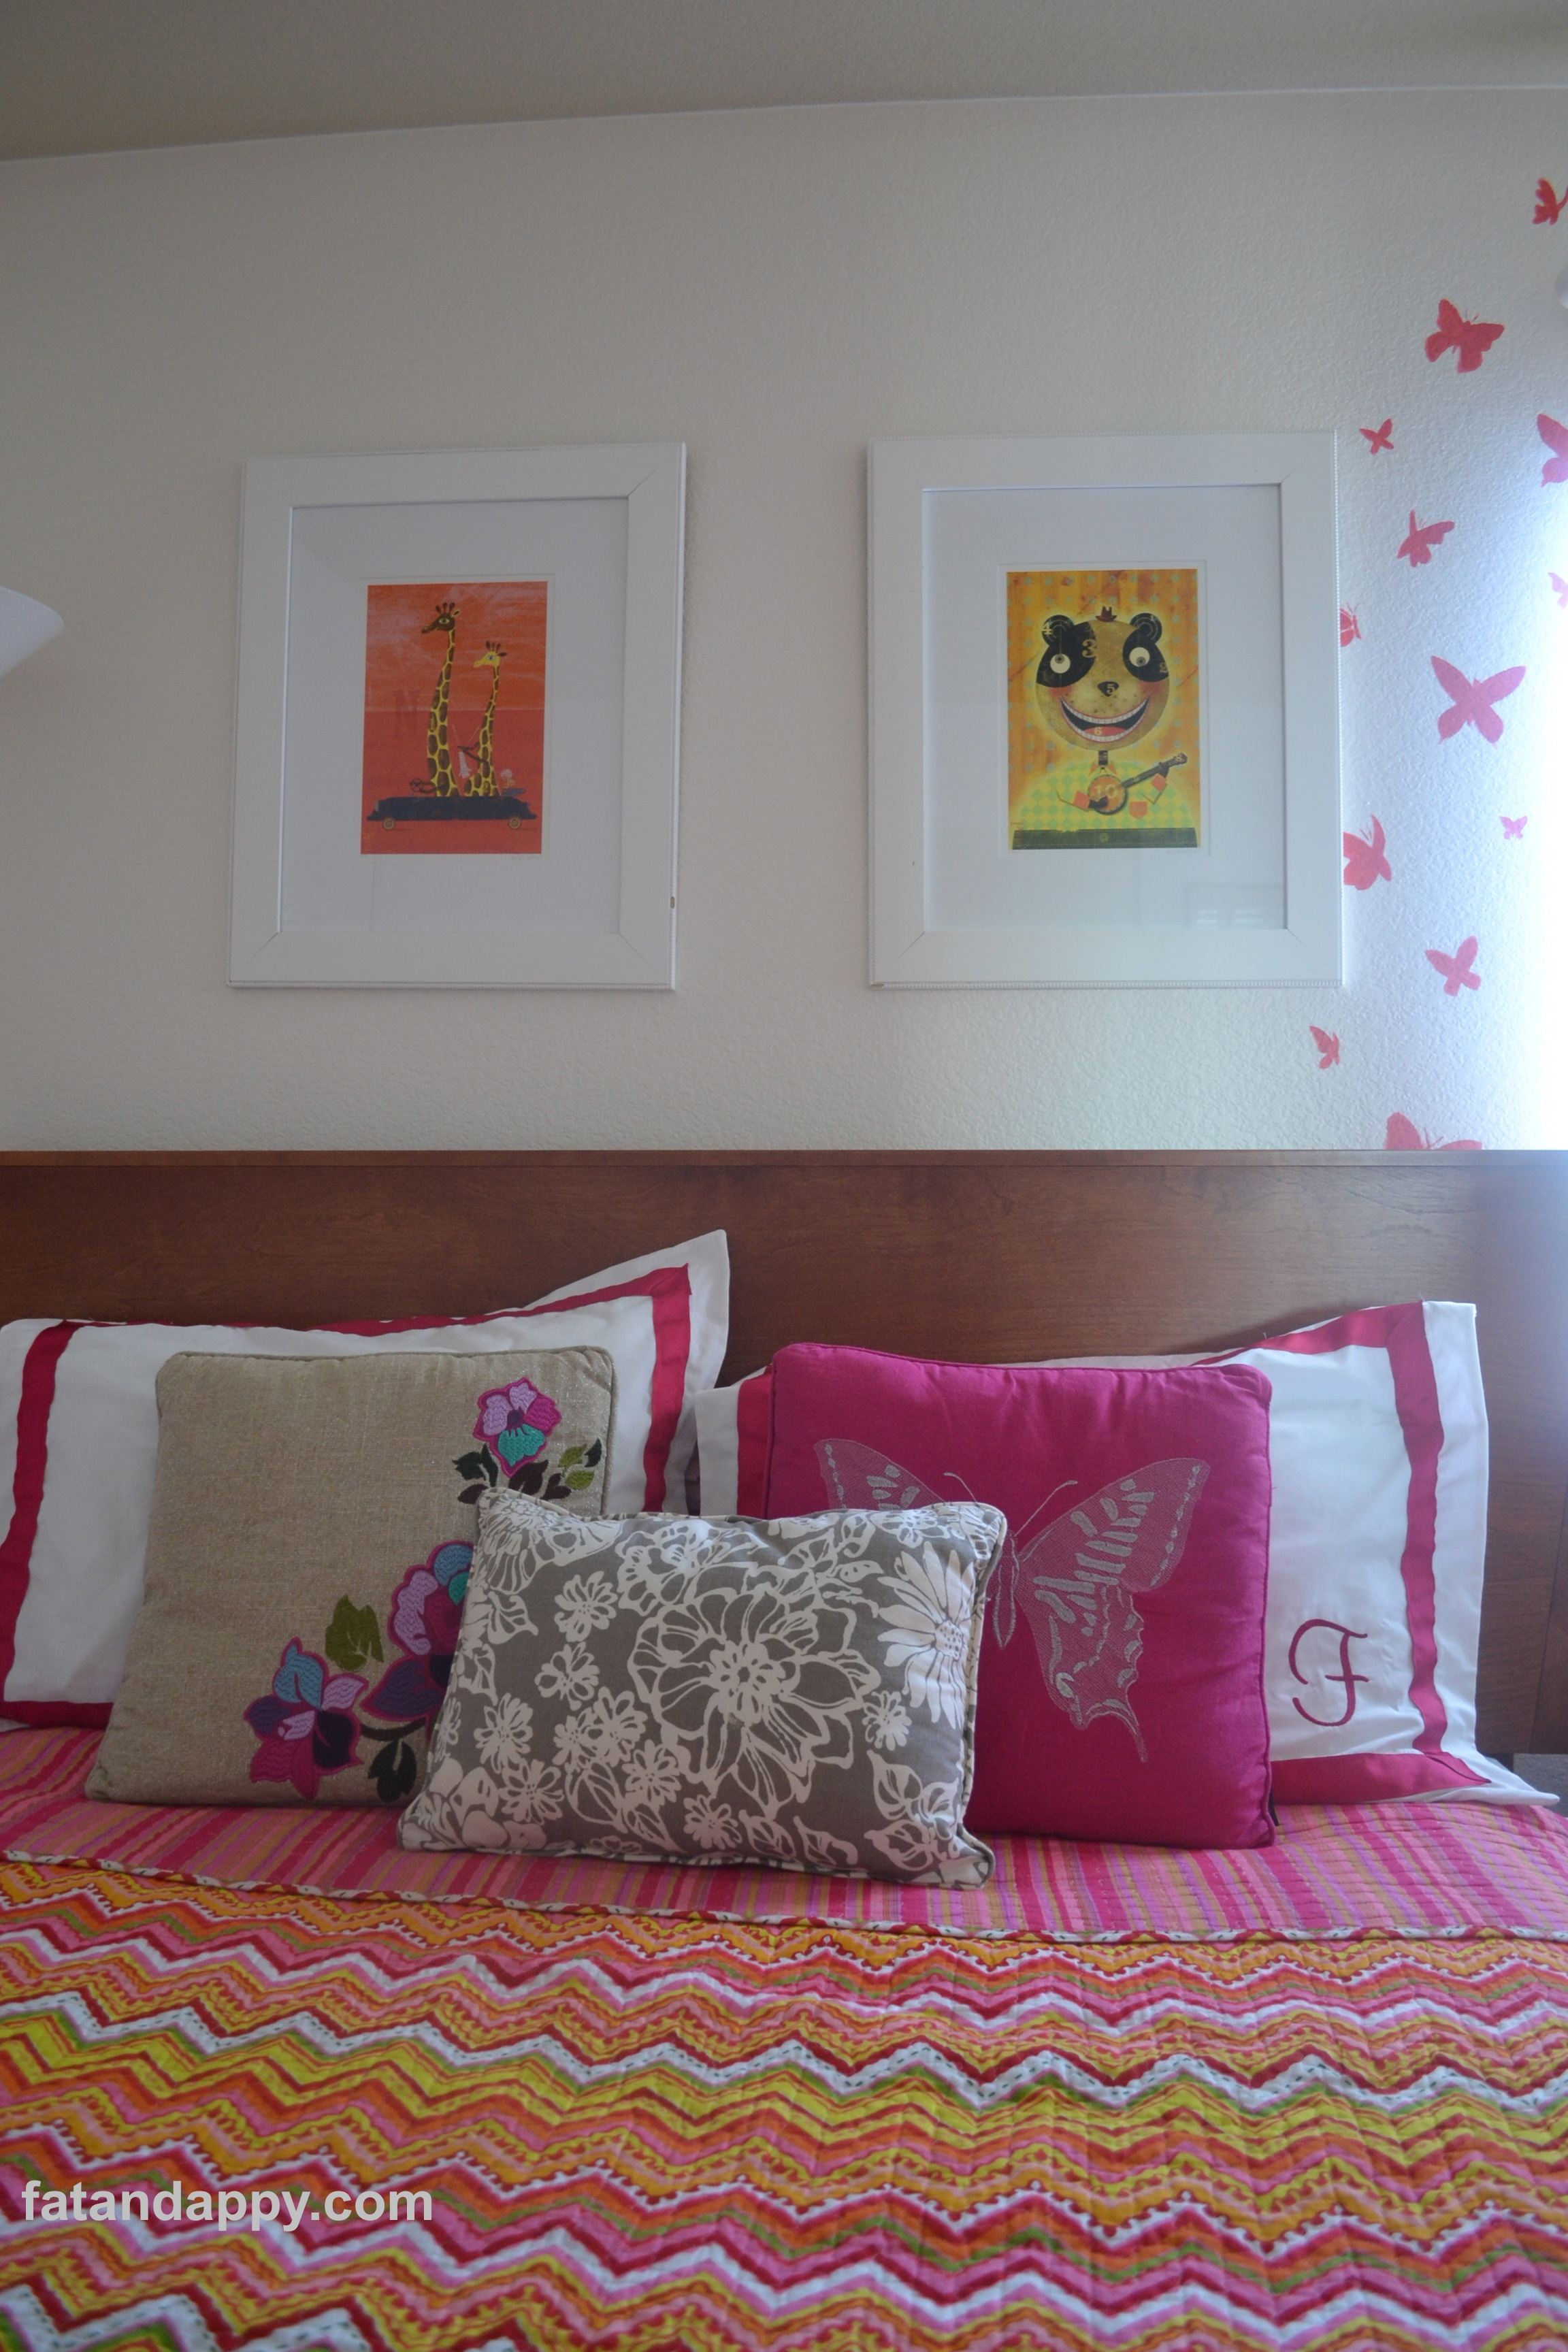 A closeup of the modern bed with pink pillows and artwork